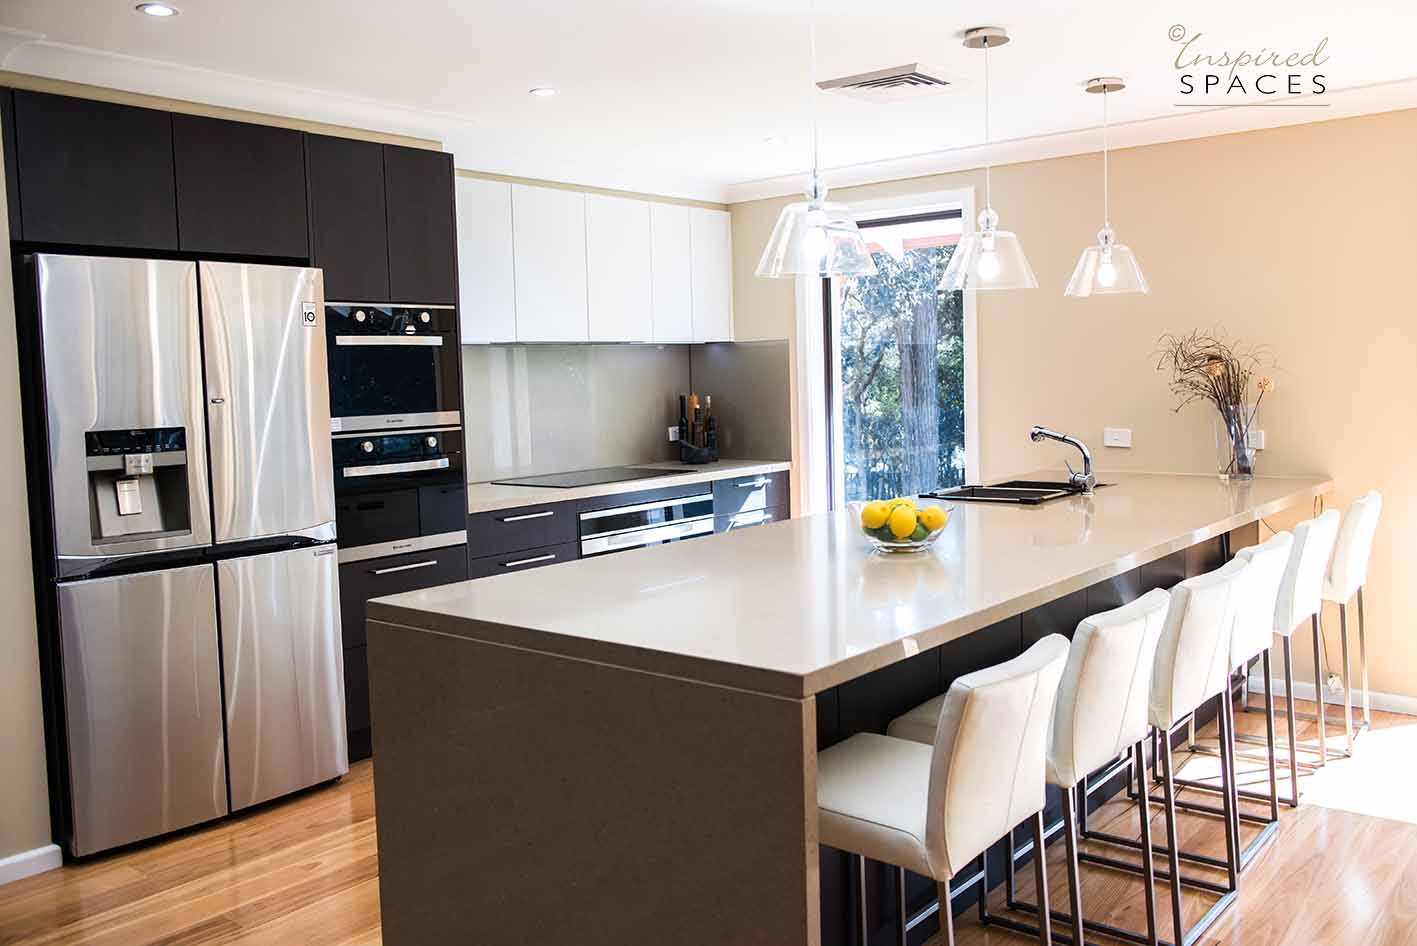 commercial kitchen design sydney kitchen design ideas inspired spaces and 291